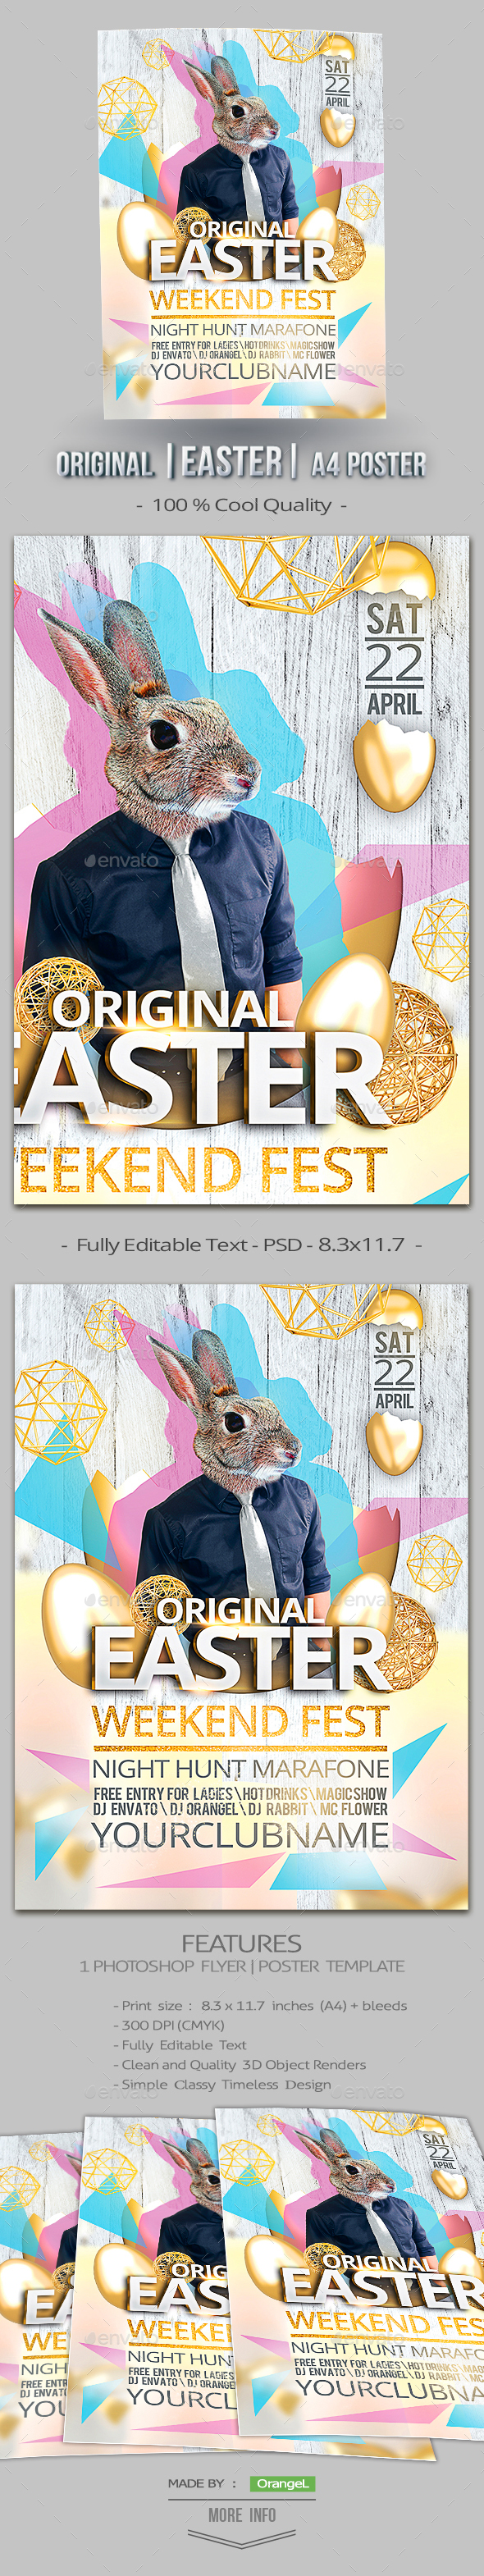 Original Easter A4 Poster - Events Flyers